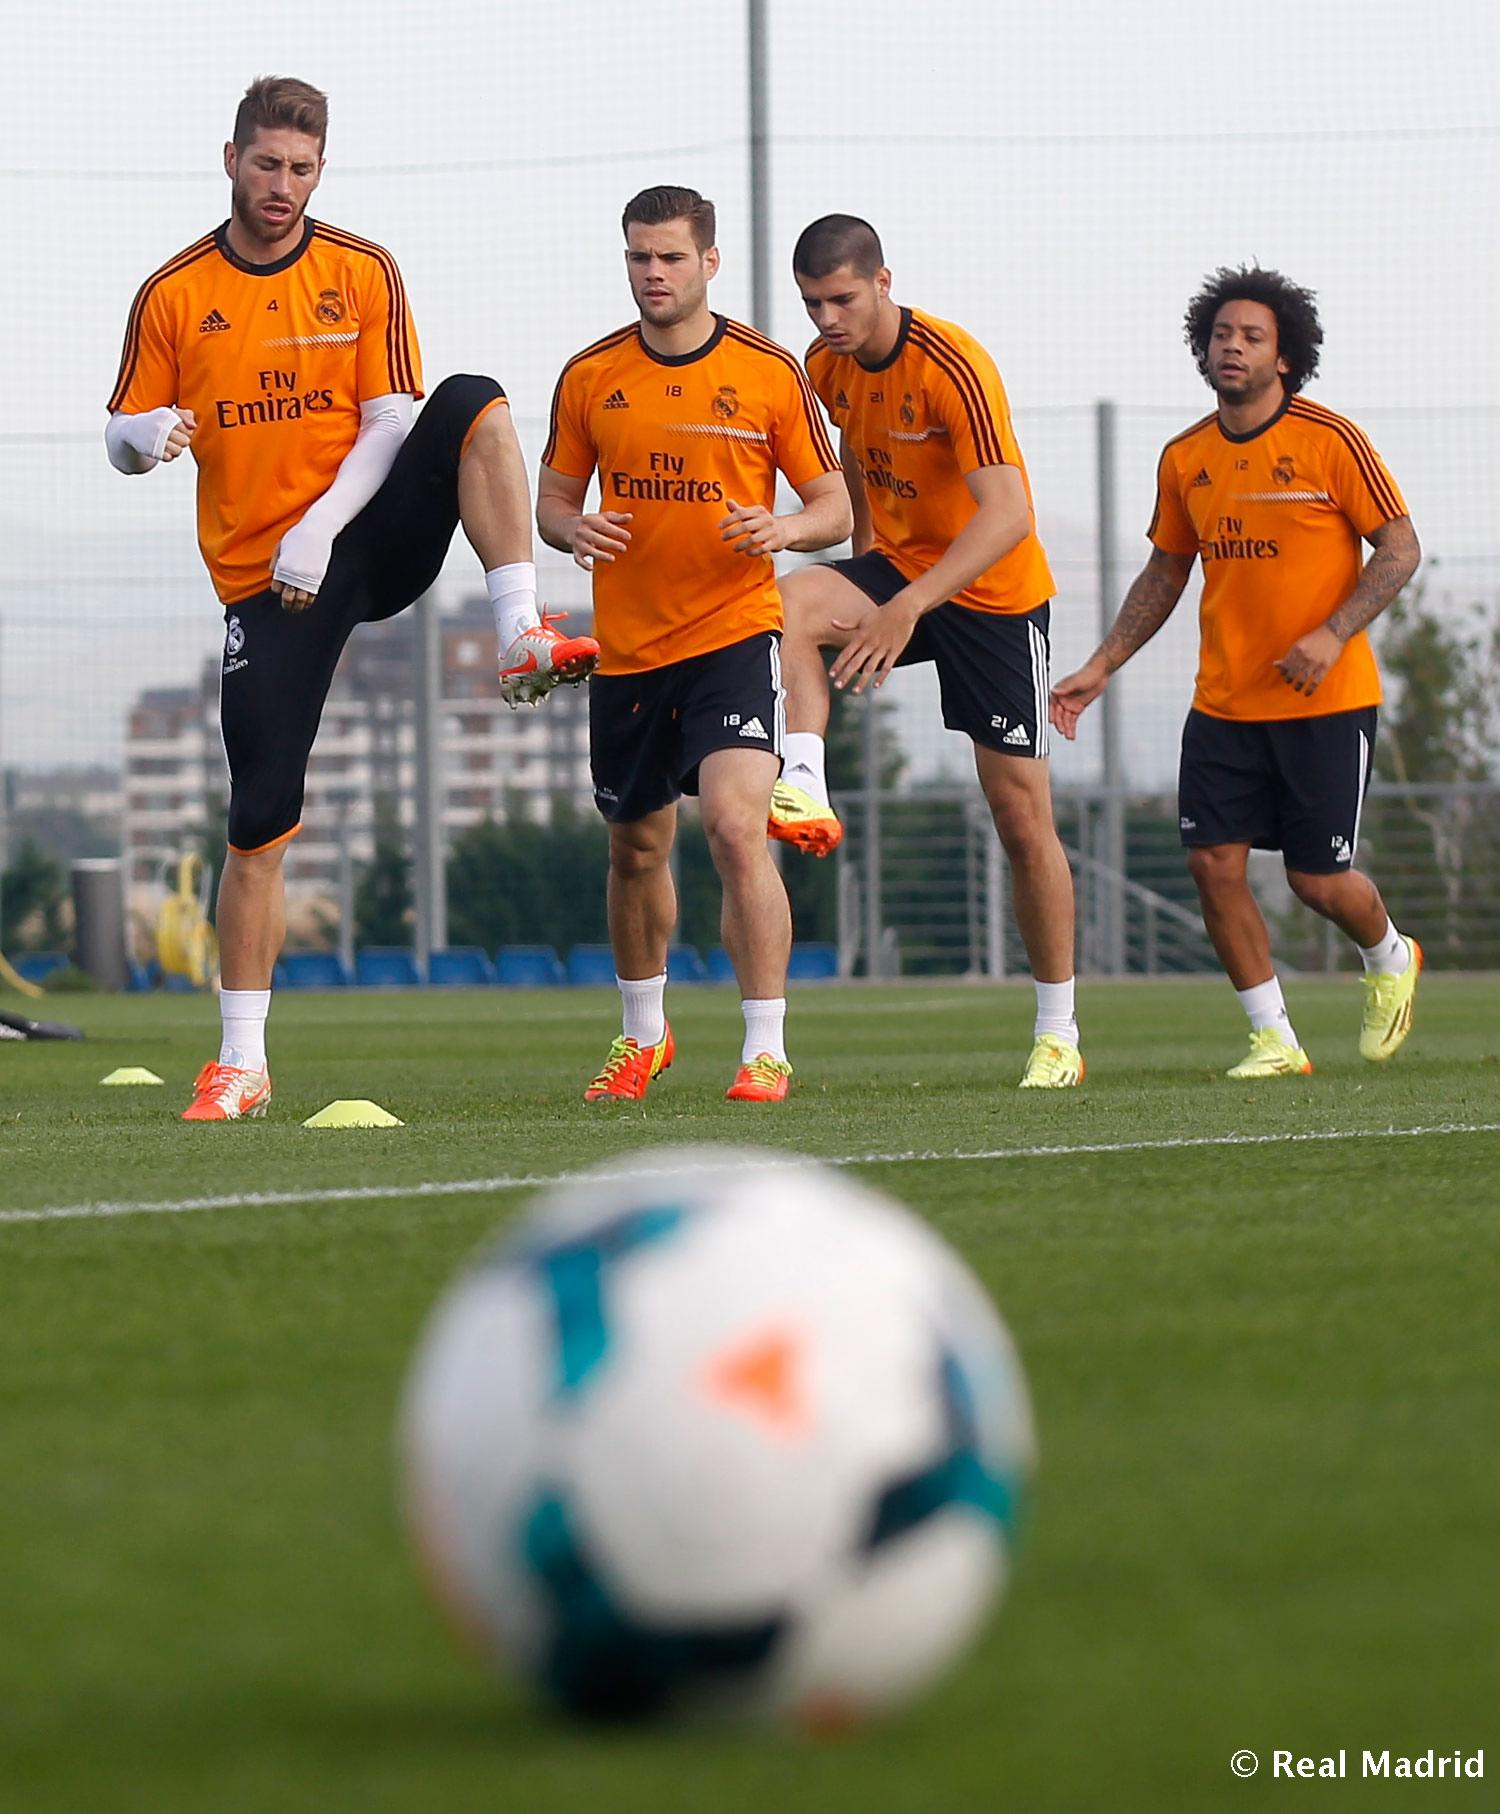 Real Madrid - Entrenamiento del Real Madrid - 10-04-2014